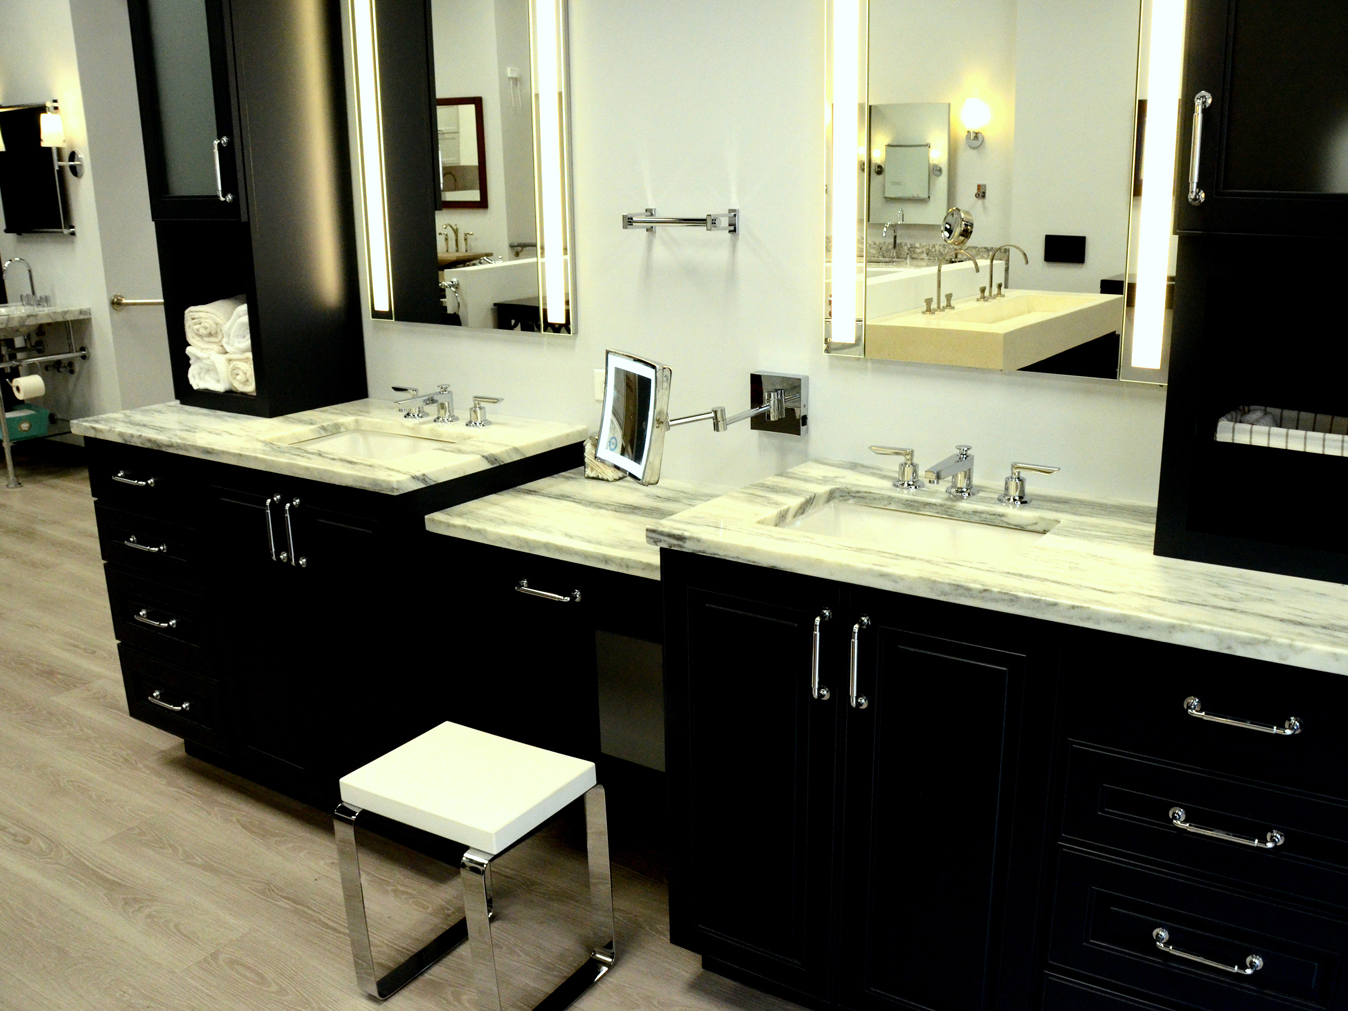 Kohler bathroom kitchen products at crawford supply in for Bathroom supply chicago